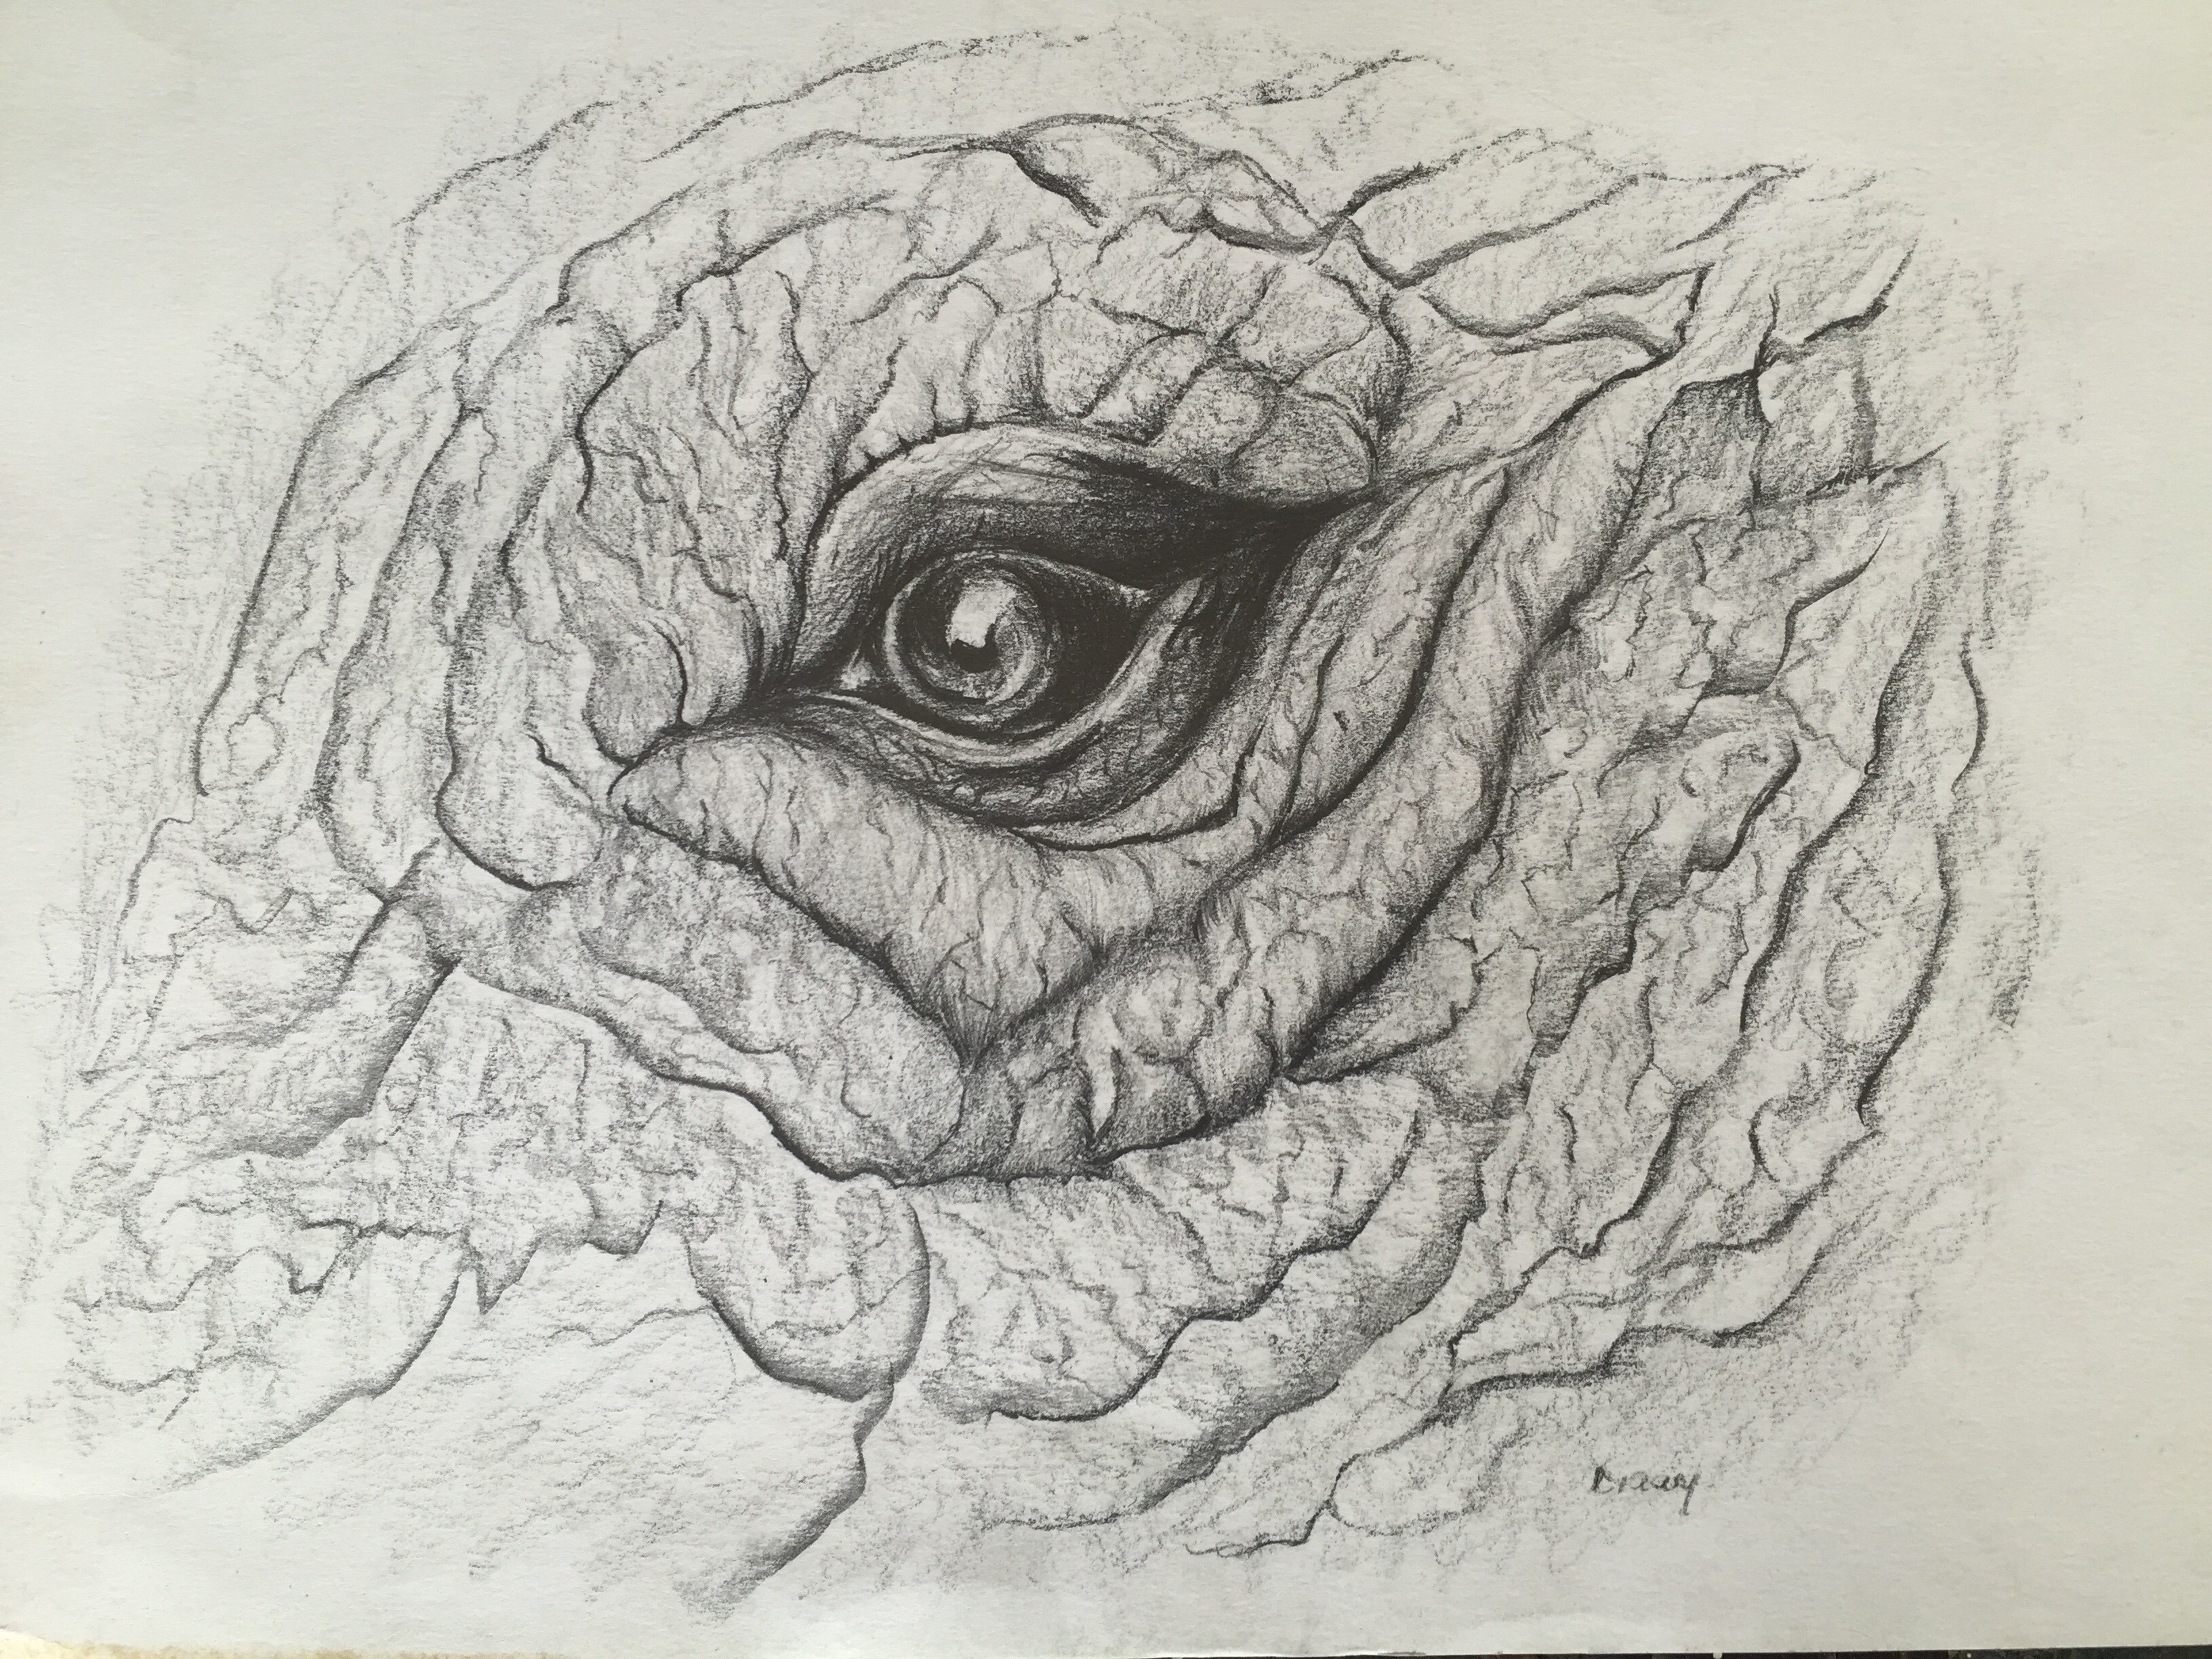 Elephant Eye Drawing At GetDrawings.com | Free For Personal Use Elephant Eye Drawing Of Your Choice